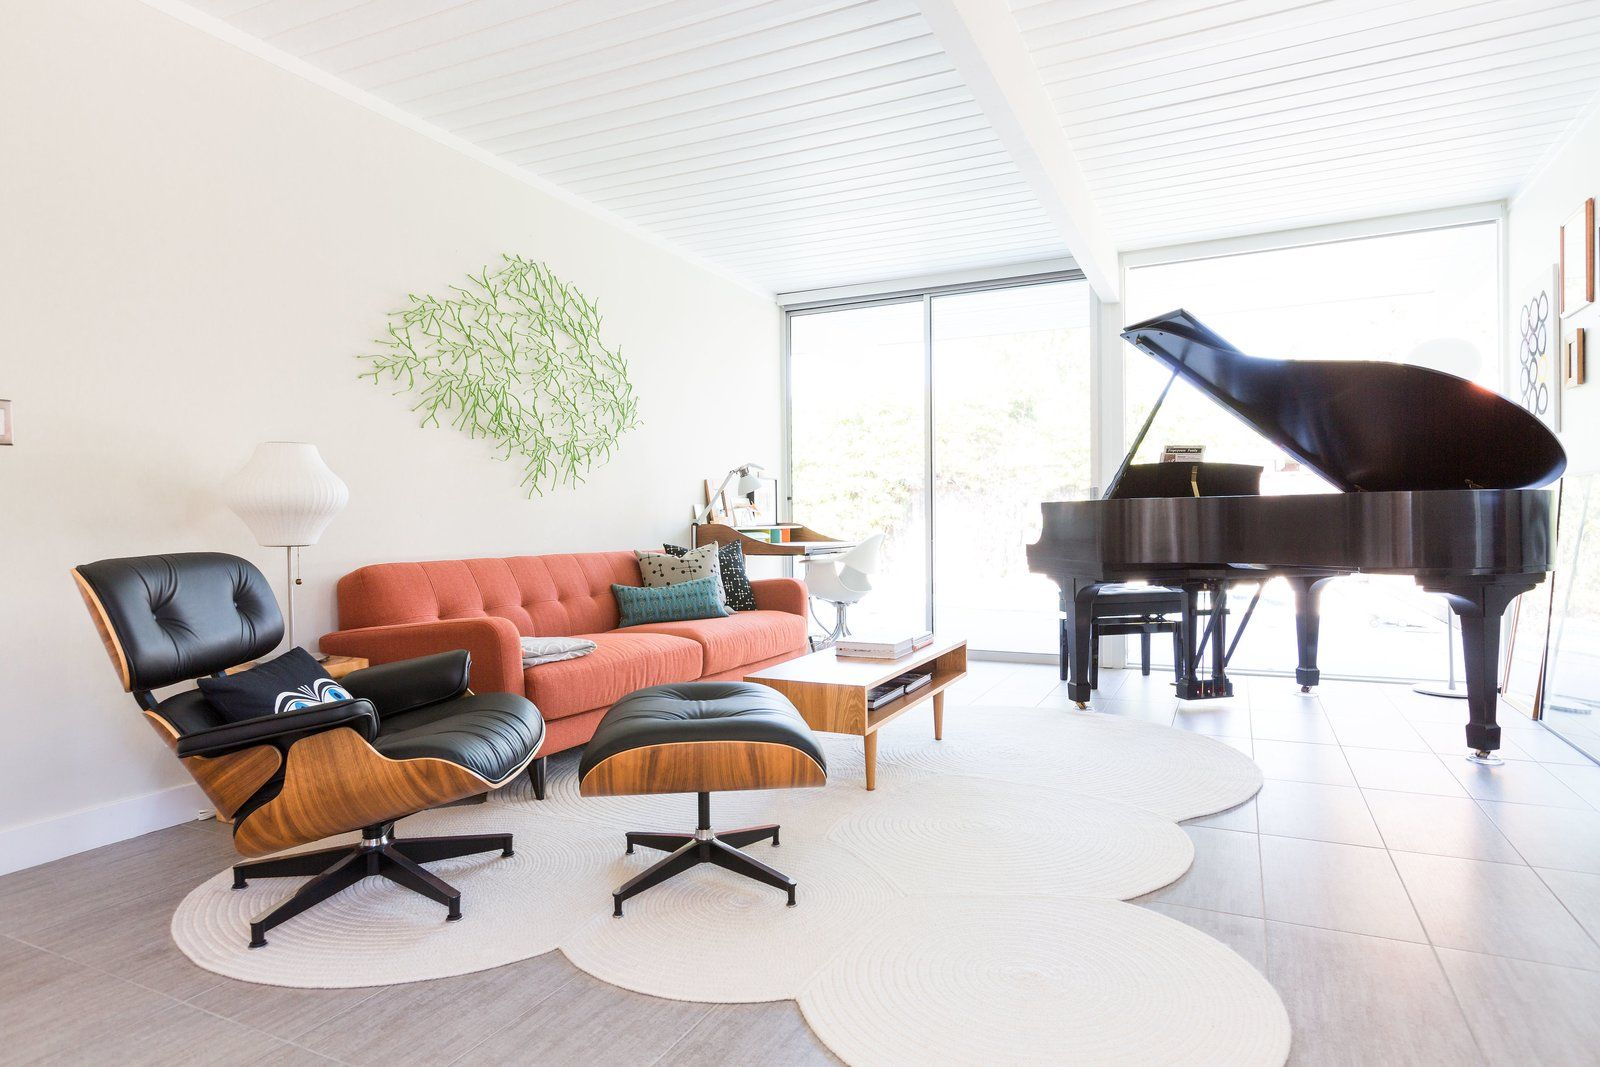 Shop the Look: Midcentury Living Room | Living room furniture ...